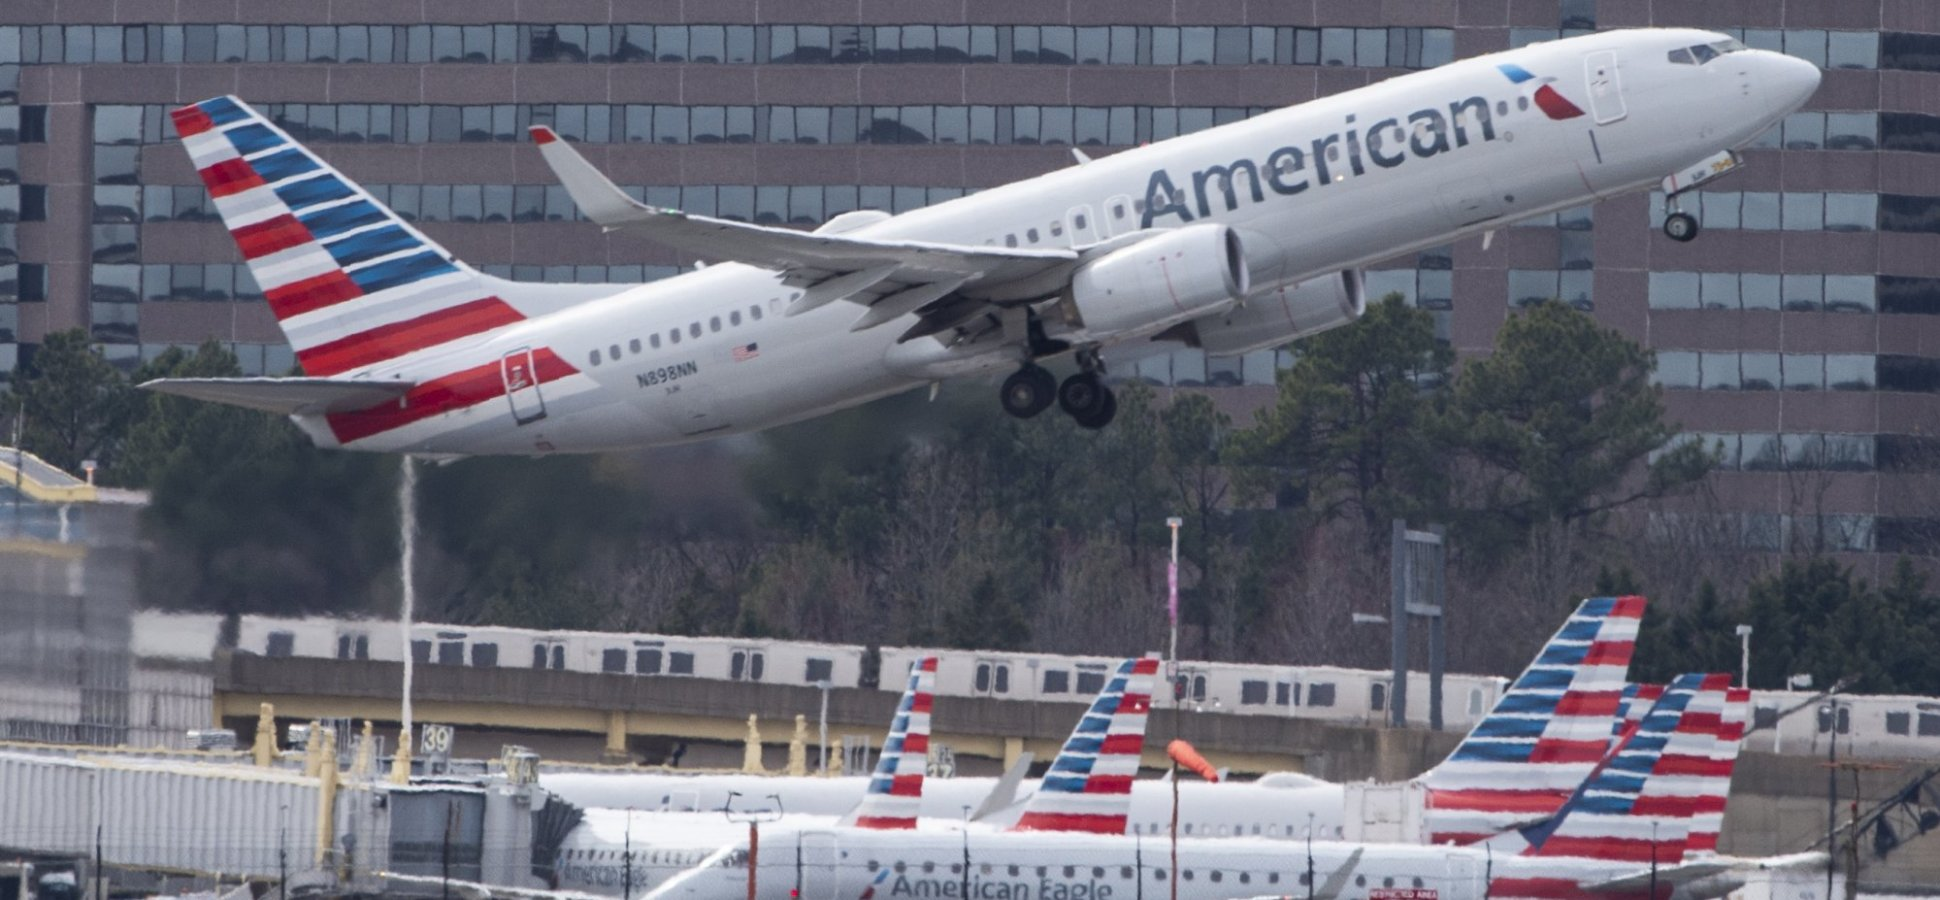 The CEO of American Airlines Just Made an Incredible Announcement, and People Have No Idea What to Think. (Is This Insane or Brilliant?)